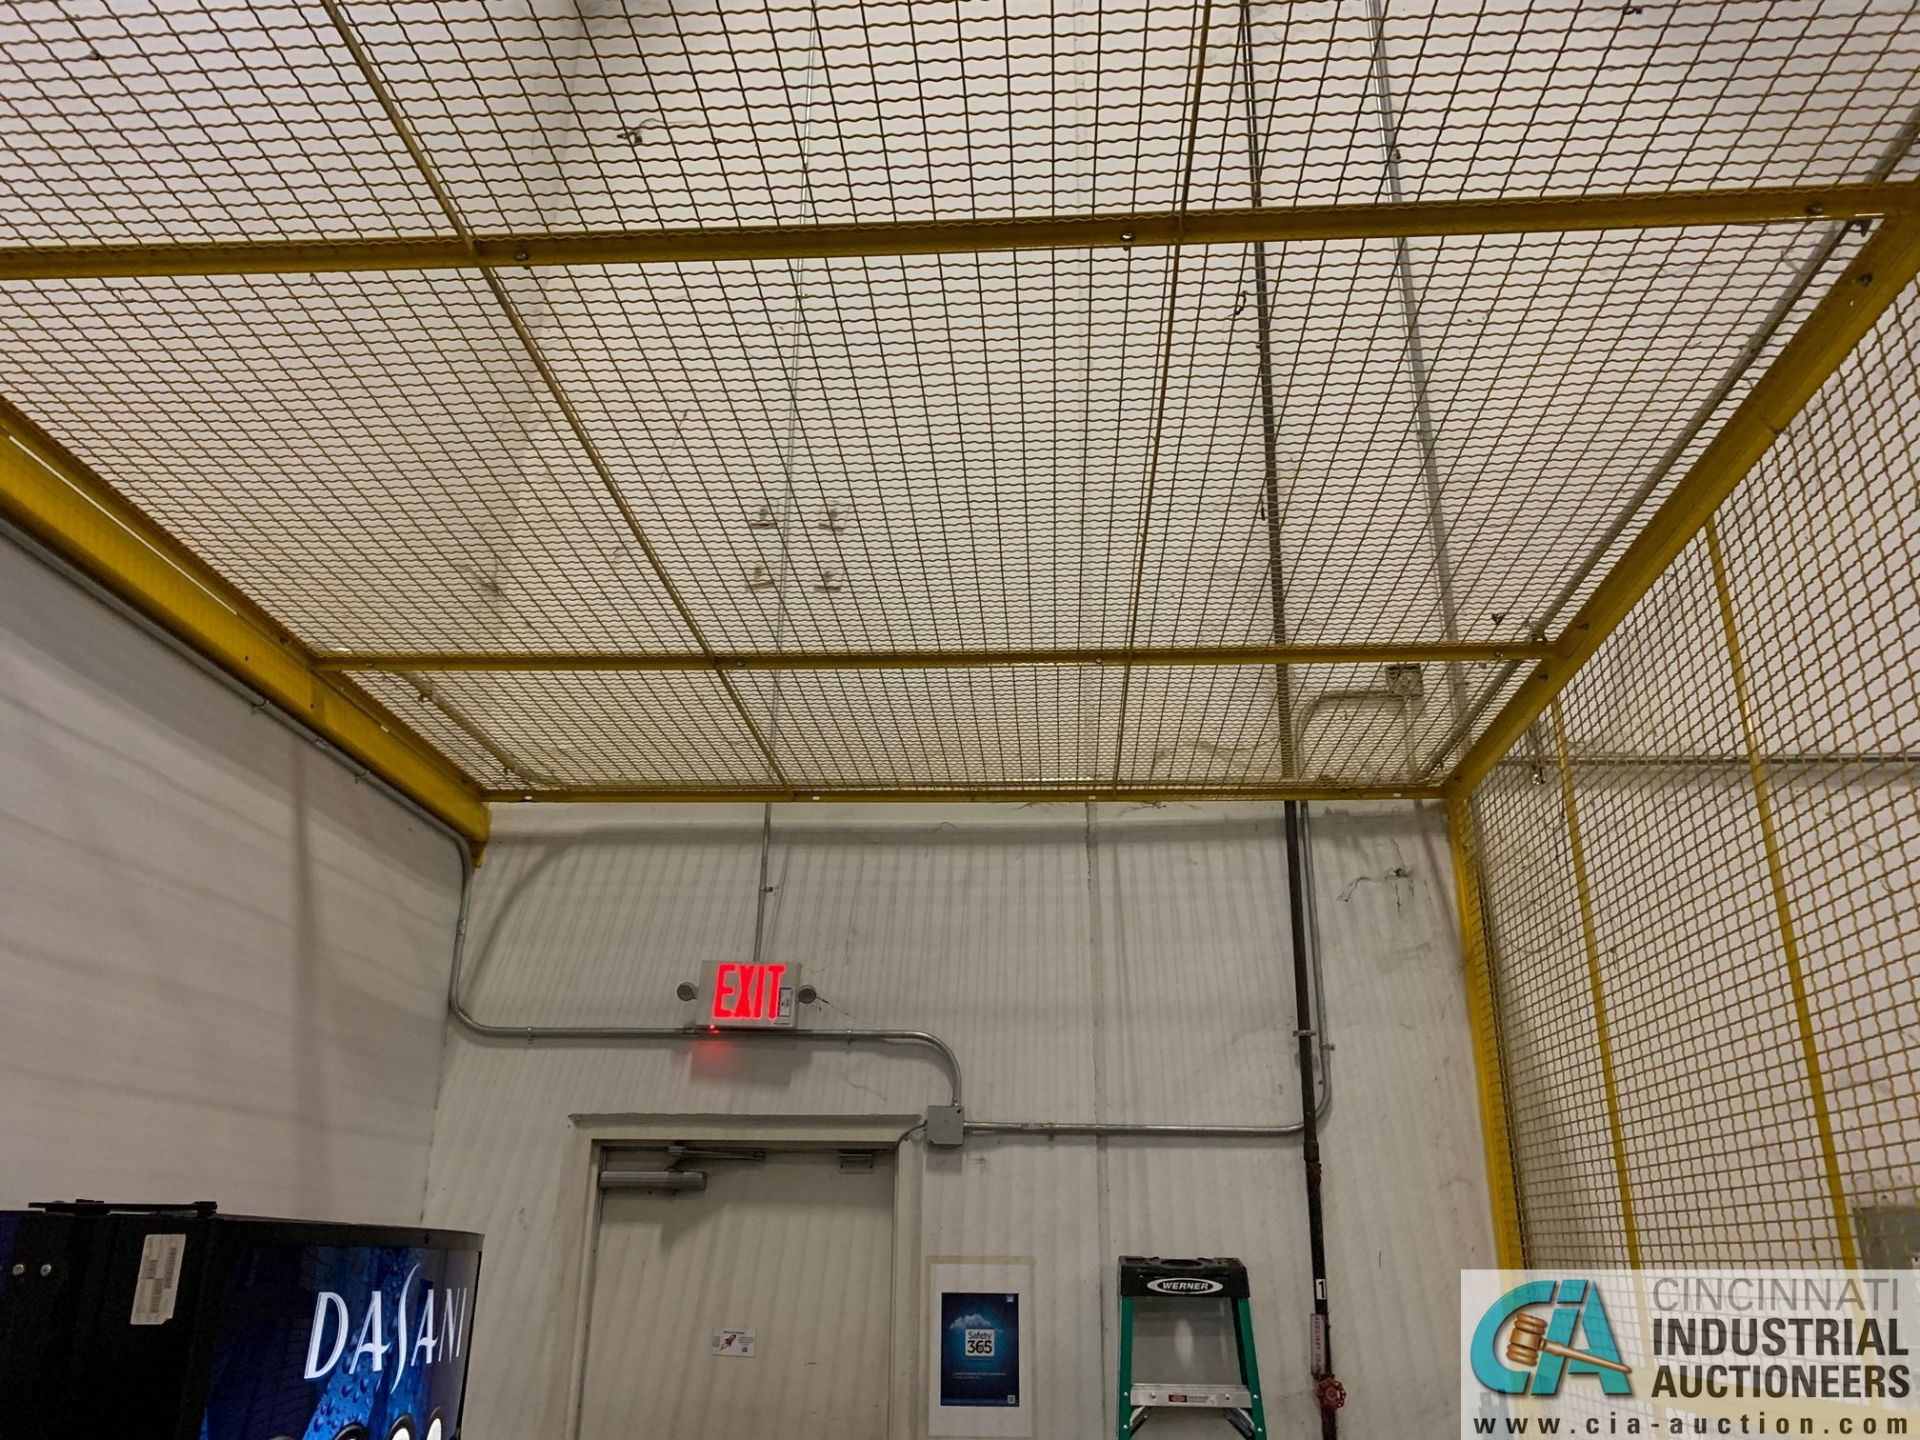 SAFETY CAGE - FRONT DRIVERS (5400 OAKLEY INDUSTRIAL BLVD., FAIRBURN, GA 30213) - Image 4 of 6